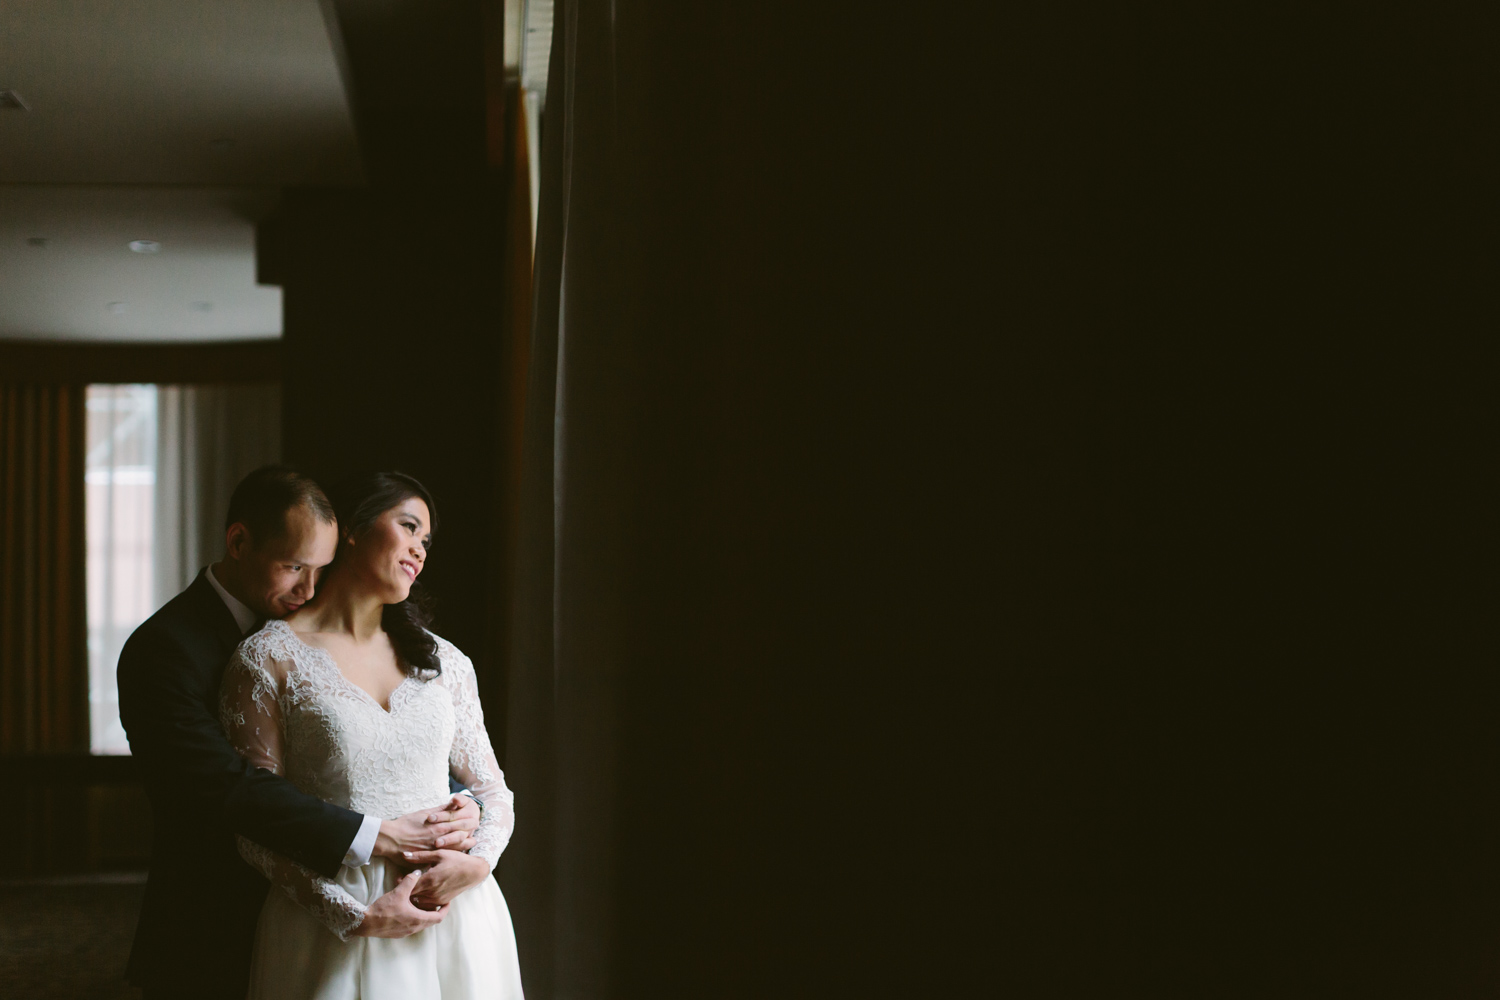 Groom holding bride in front of a window